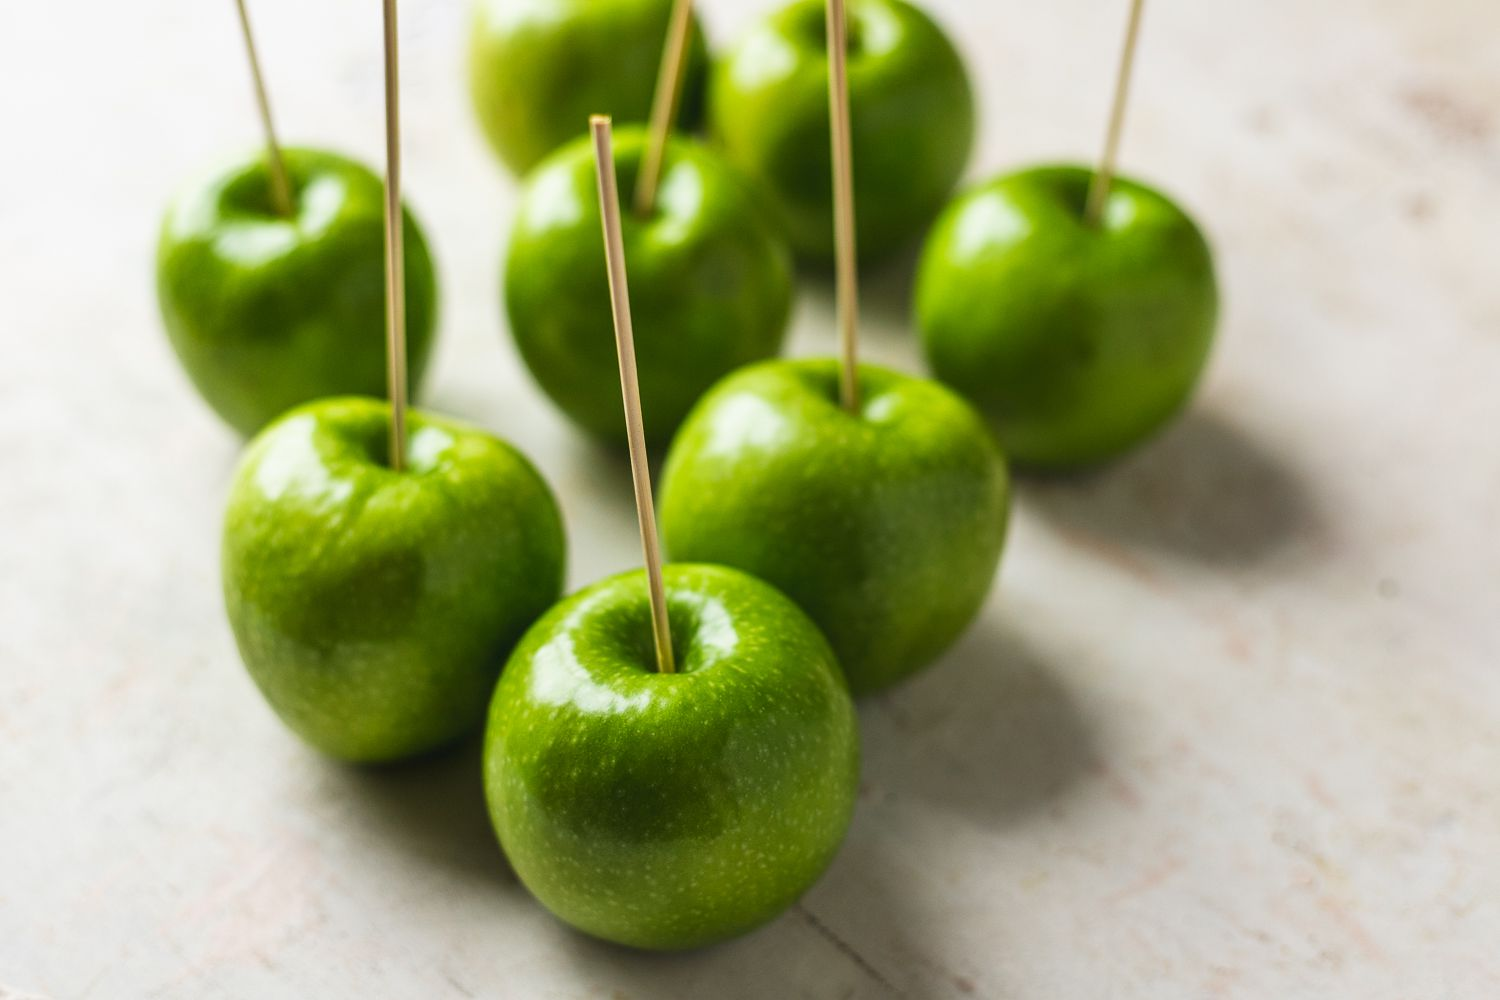 green apples with sticks in the stem end